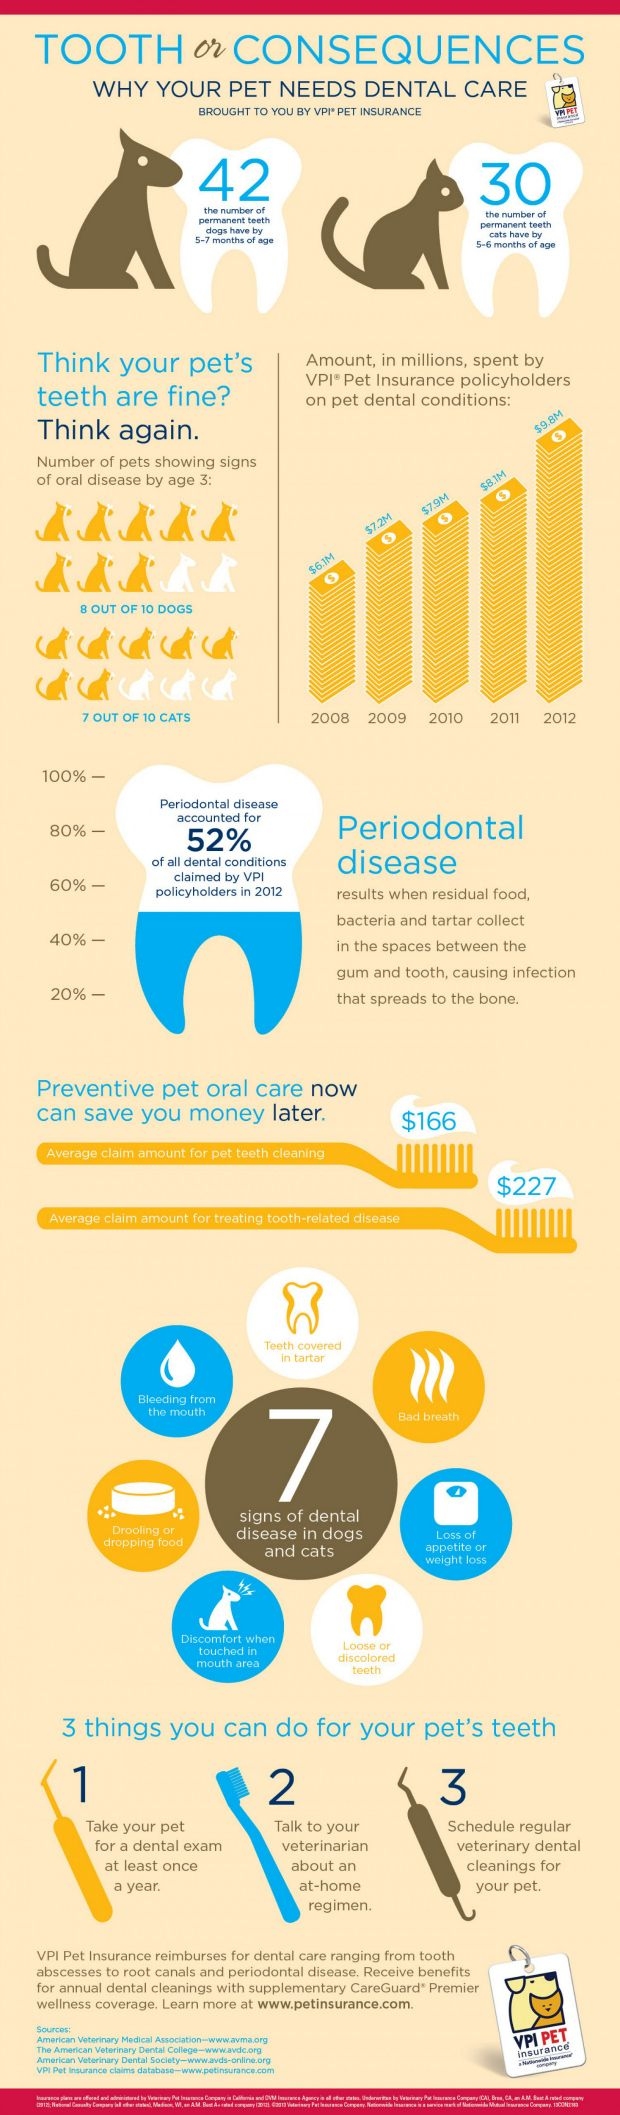 It's National Pet Dental Health Month - do you know the 7 signs of dental disease in dogs and cats? http://www.thelazypitbull.com/2014/01/national-pet-dental-health-month/